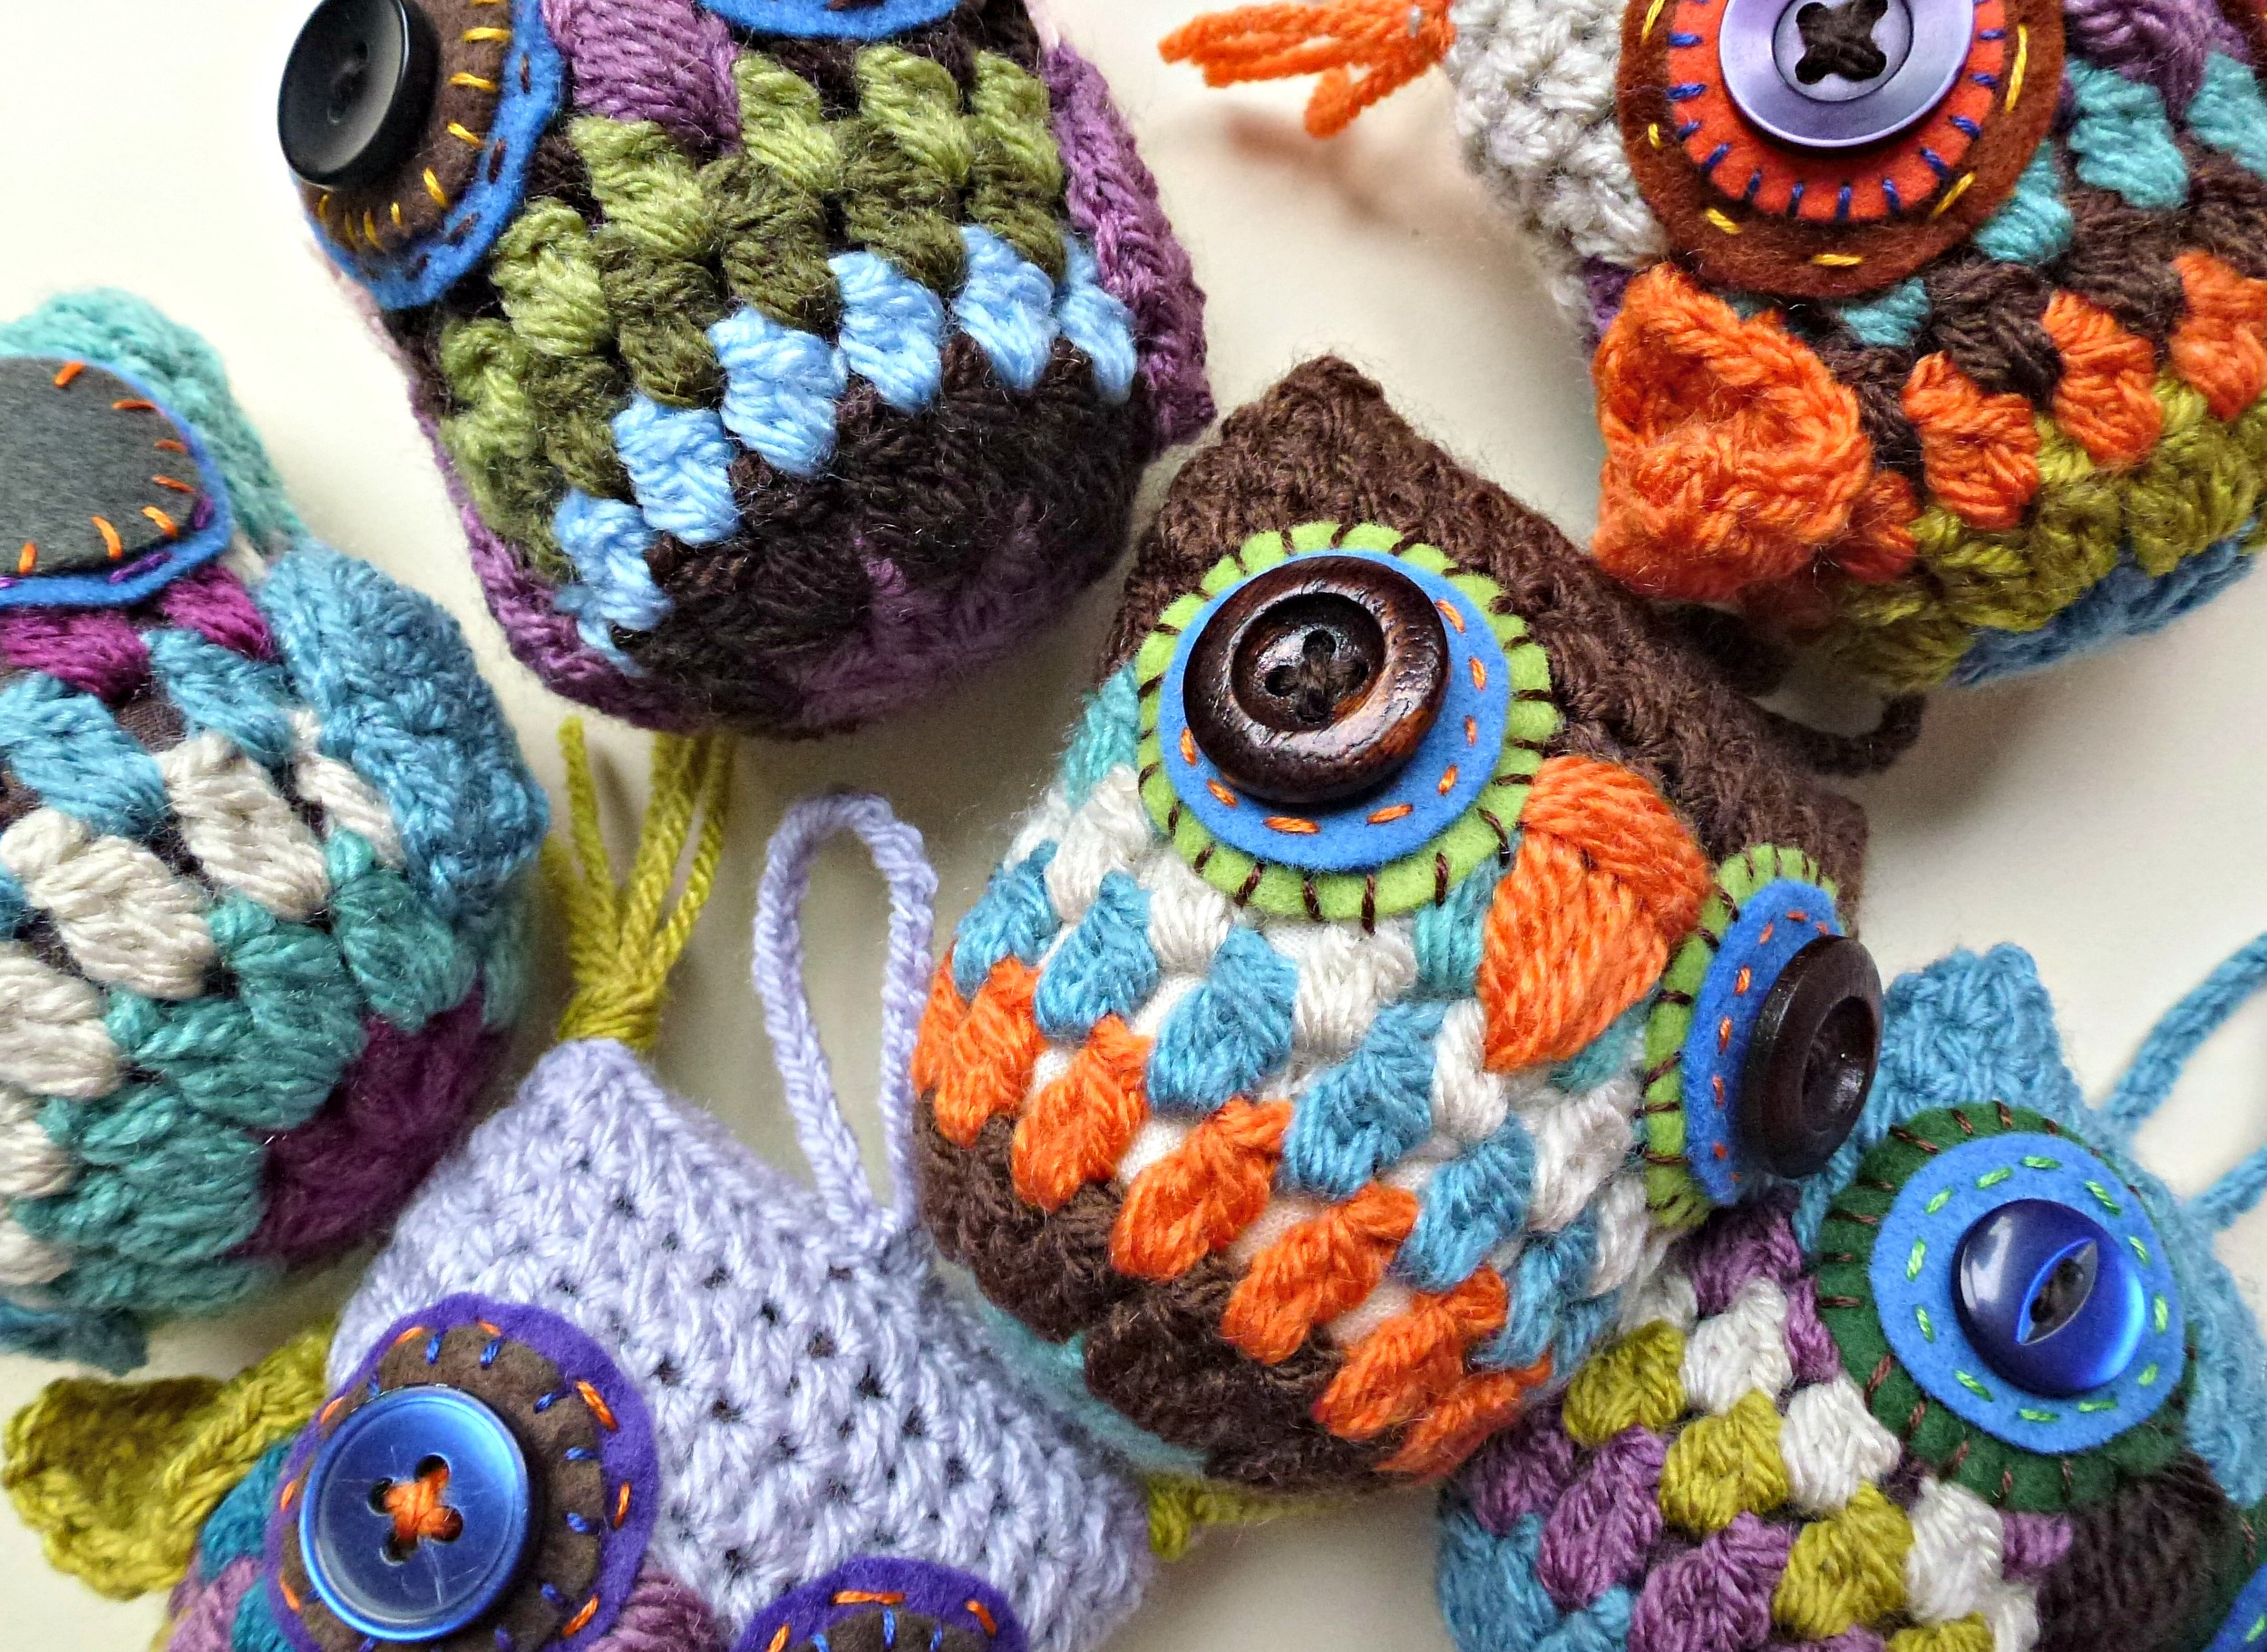 Crochet Decoration Patterns Crochet Granny Owl Decoration Free Pattern Zeens And Roger